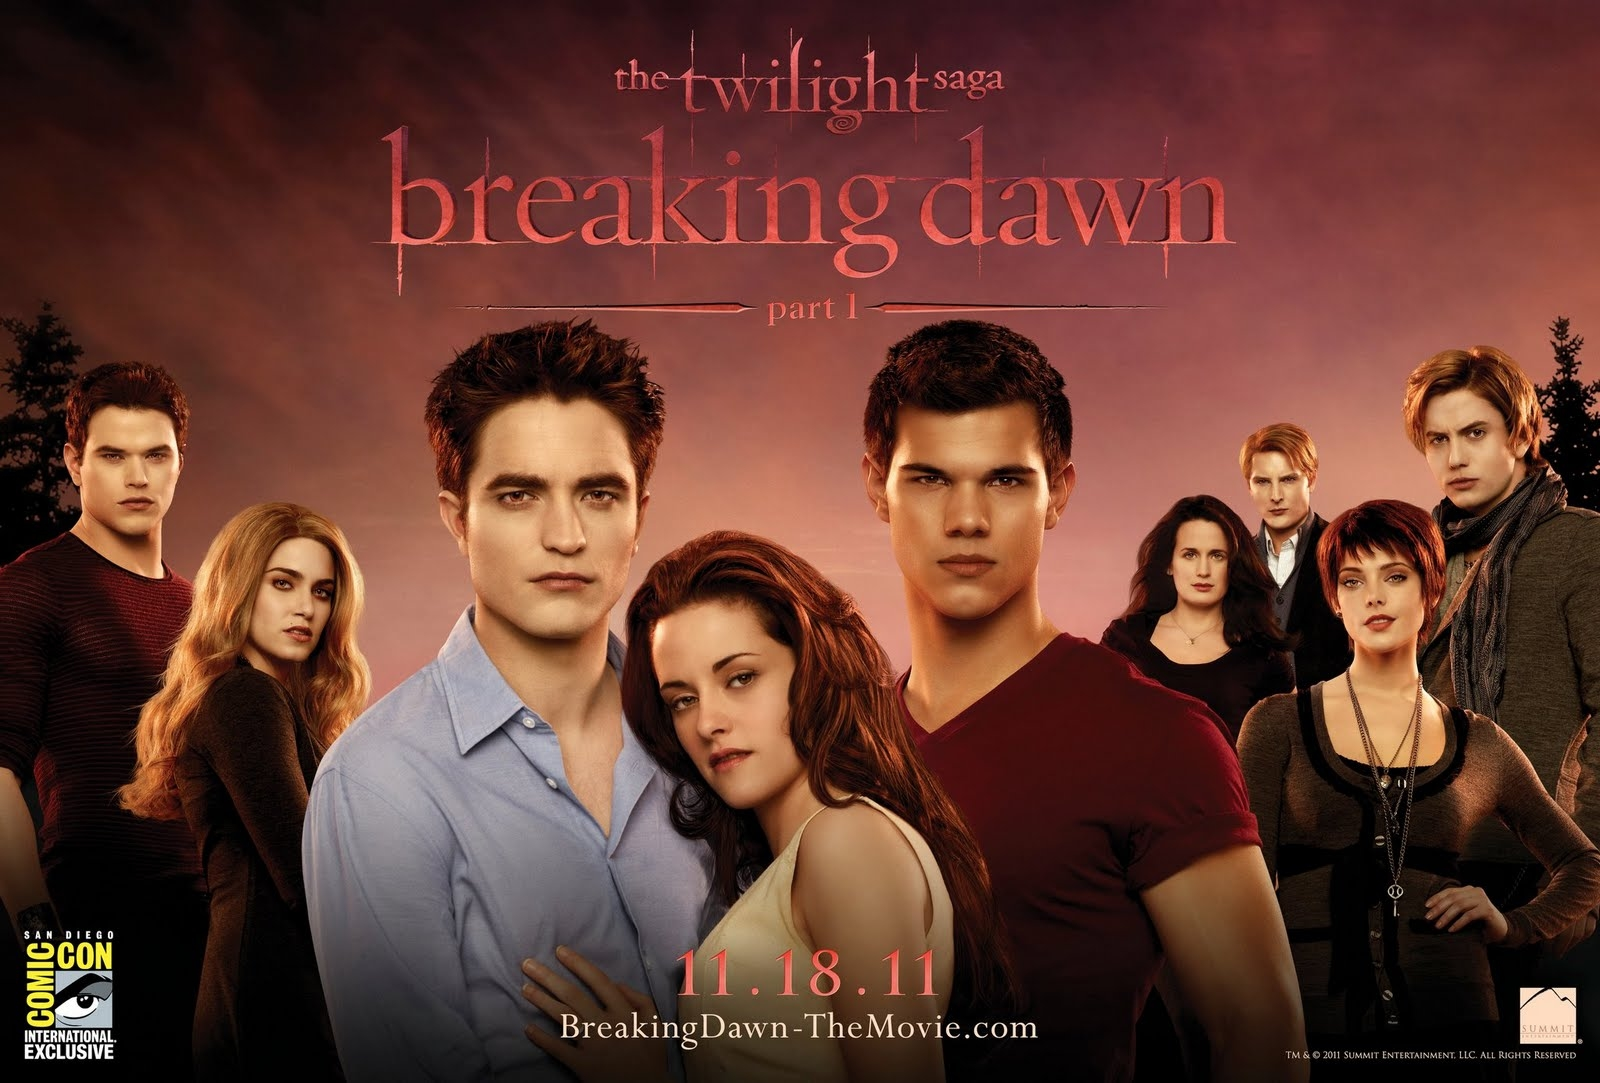 Movie News : The Twilight Saga: Breaking Dawn's Comic-Con poster - In Breaking Dawn Part I, Edward (Robert Pattinson) and Bella (Kristen Stewart) jump the broom to become husband and wife and not everyone's happy about it. Jacob Black (Taylor Lautner) has some serious resentment to deal with, which lucky for us means more drama.